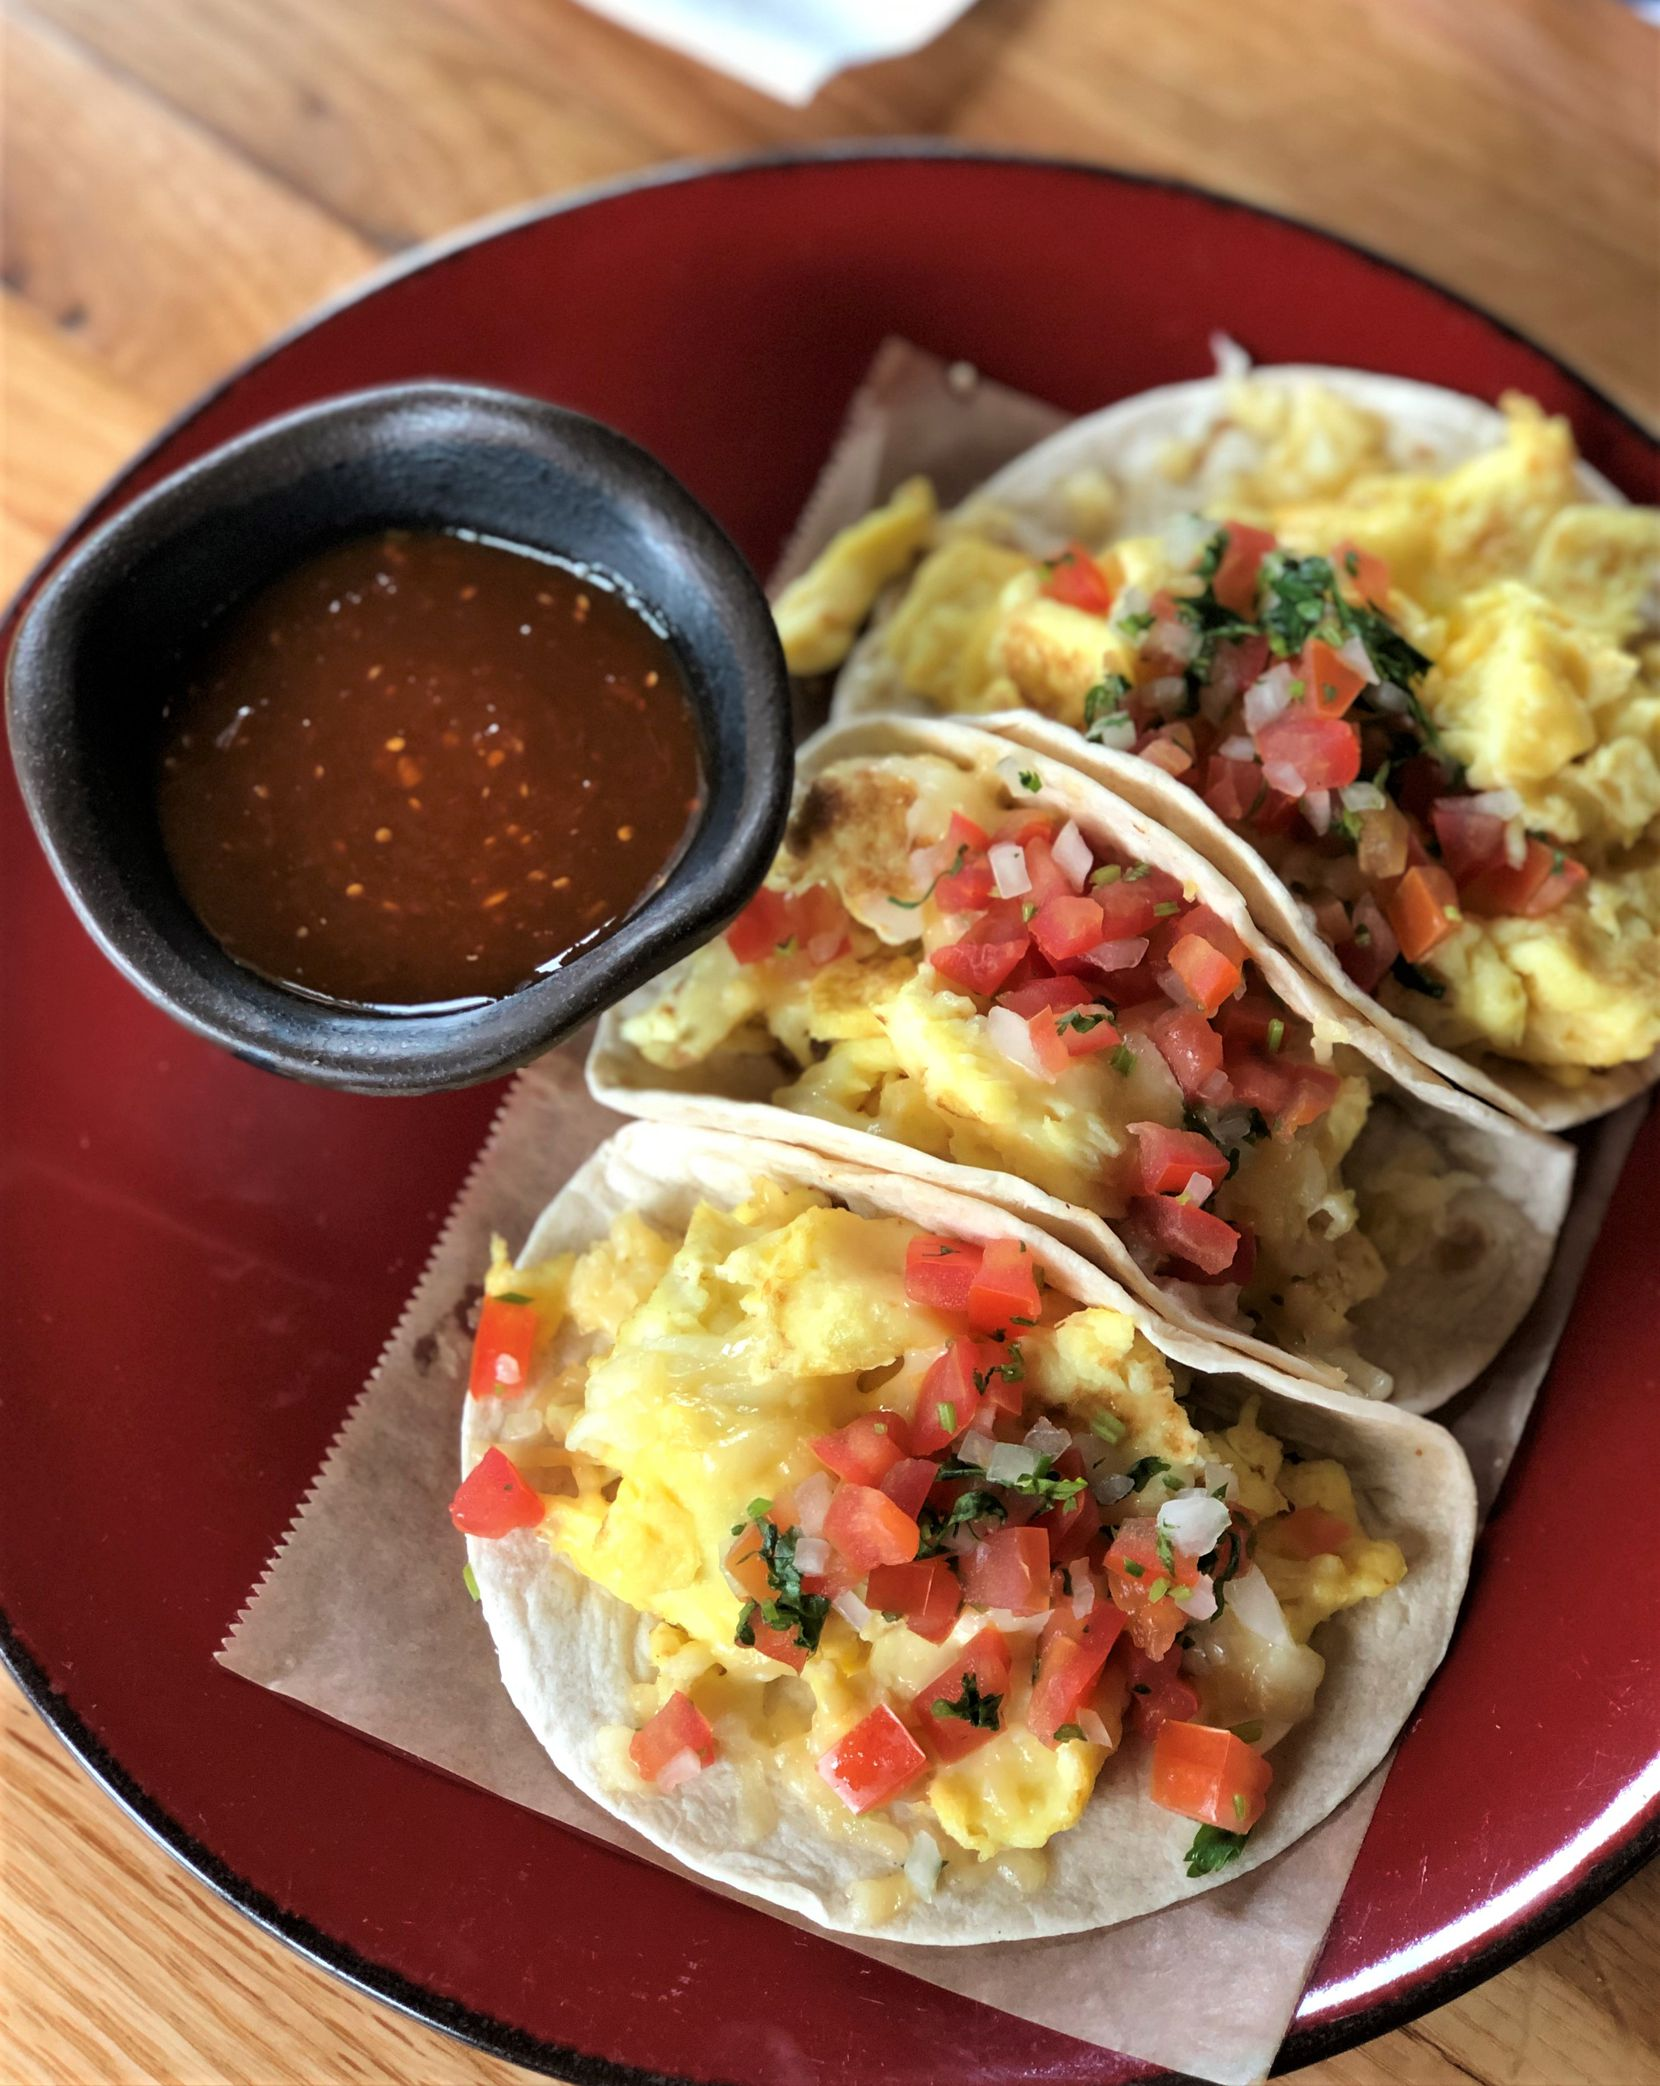 Jalisco Norte offers migas tacos as part of its Father's Day brunch offerings this year. (Jalisco Norte)